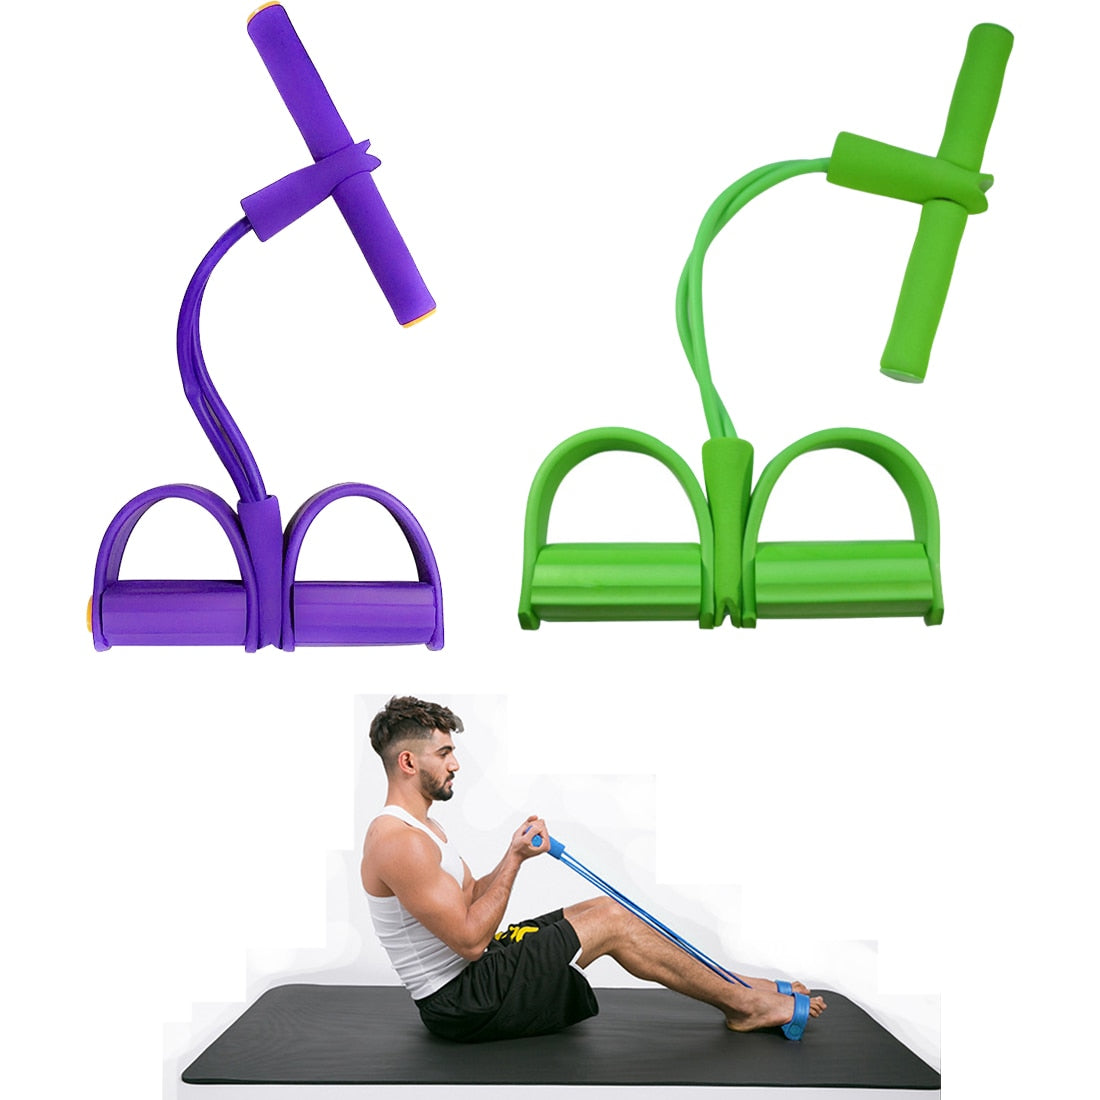 Elastic Pull Ropes Exerciser Rower Belly Resistance Band Home Gym Sport Training Elastic Bands For Fitness VIP available in purple. Delivery in 14 to 21 days